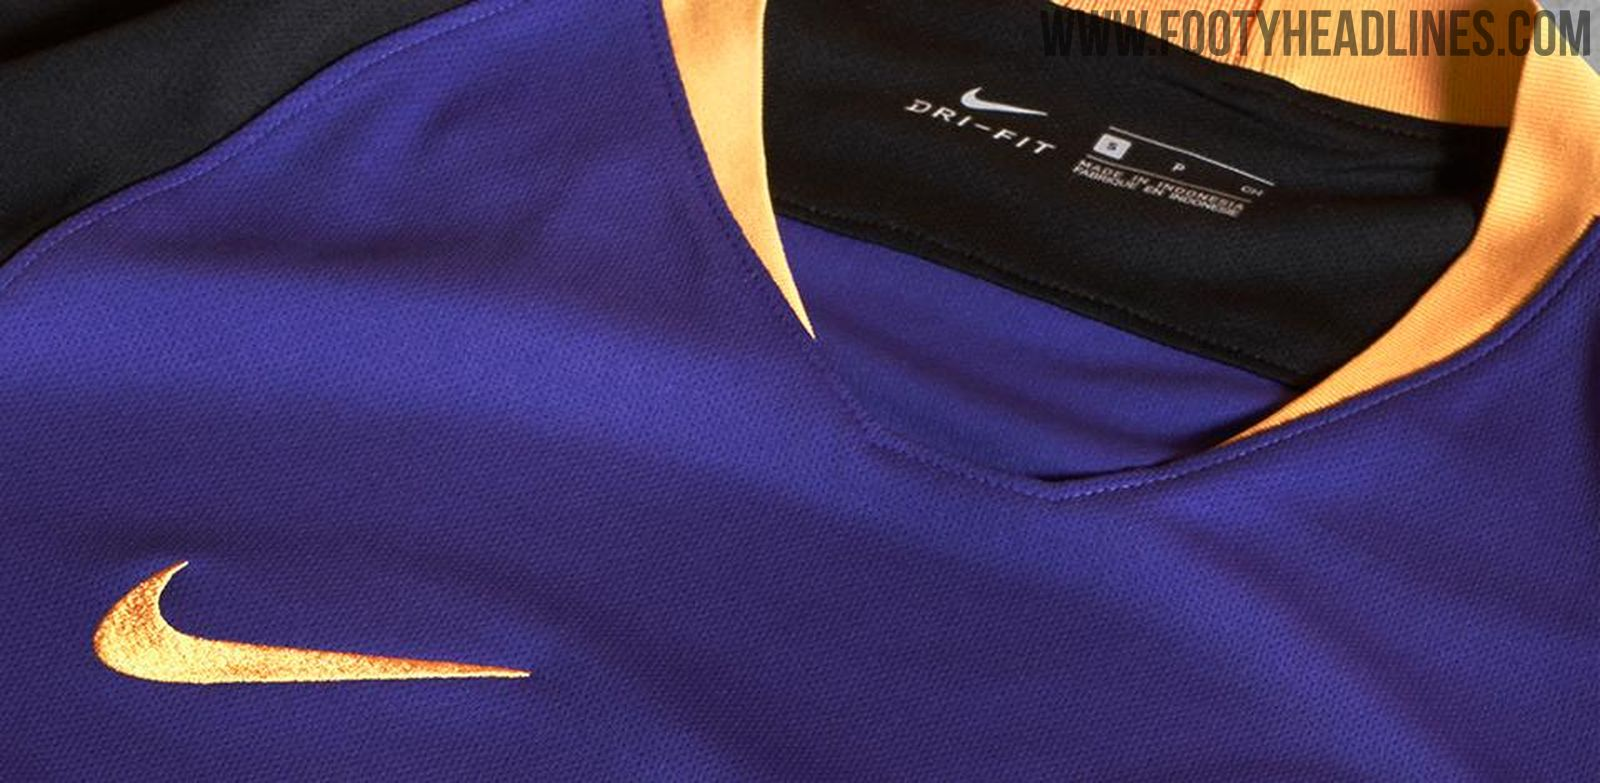 1487a6744 The Kaizer Chiefs 2018-2019 away jersey is purple with black sleeves and a  gold collar.